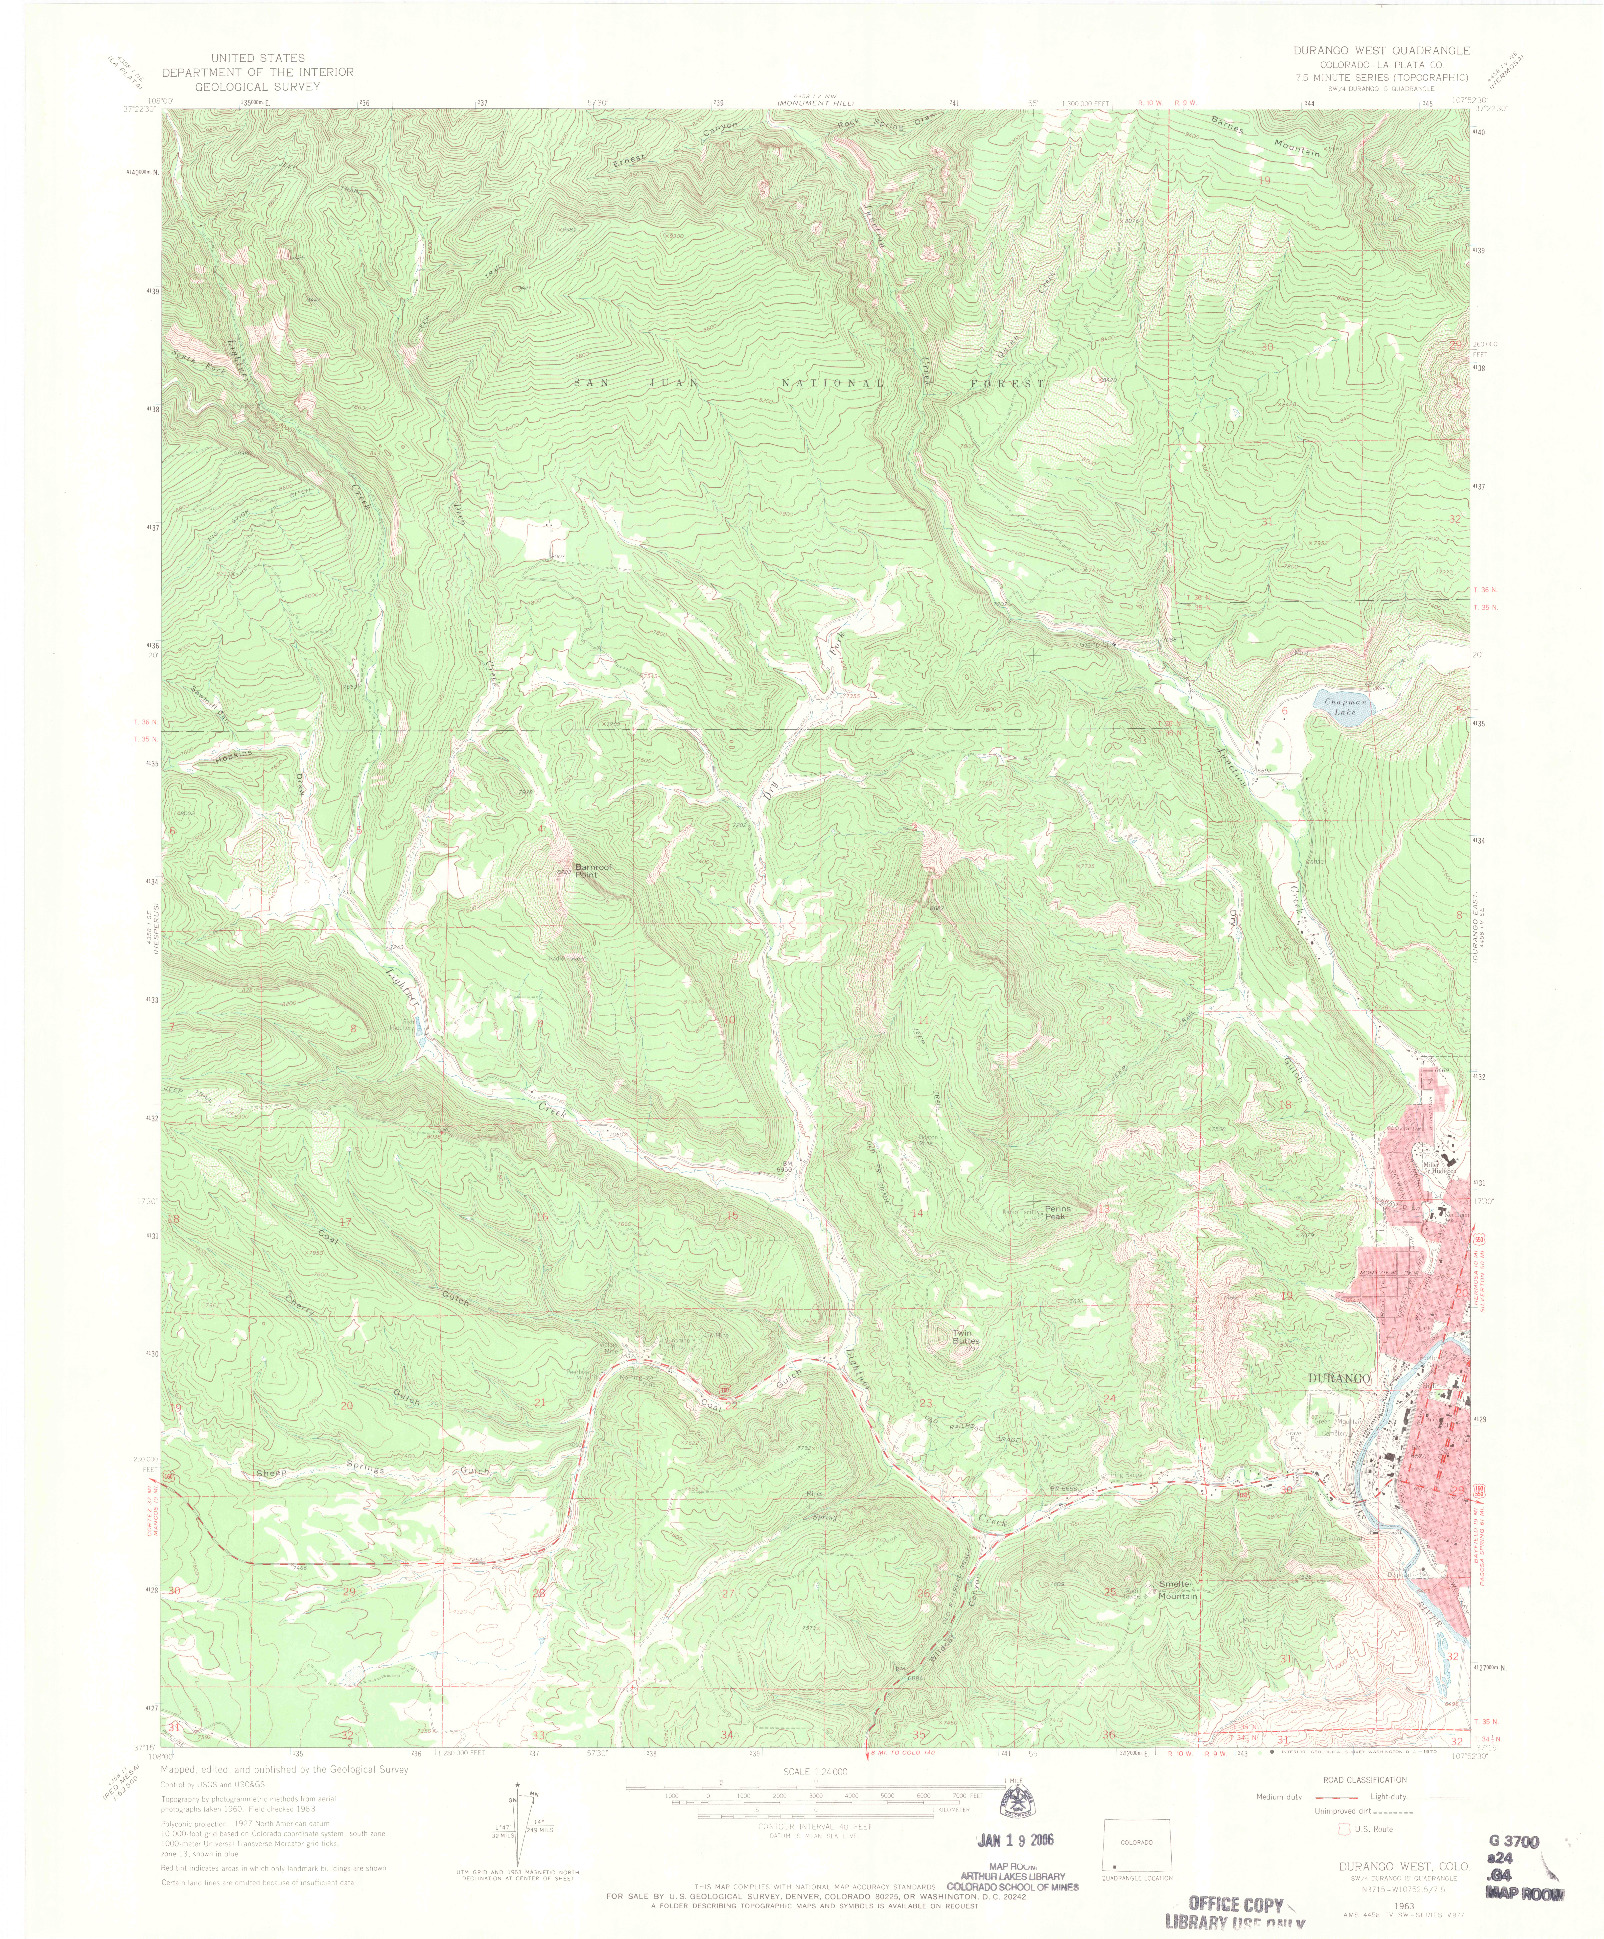 USGS 1:24000-SCALE QUADRANGLE FOR DURANGO WEST, CO 1963